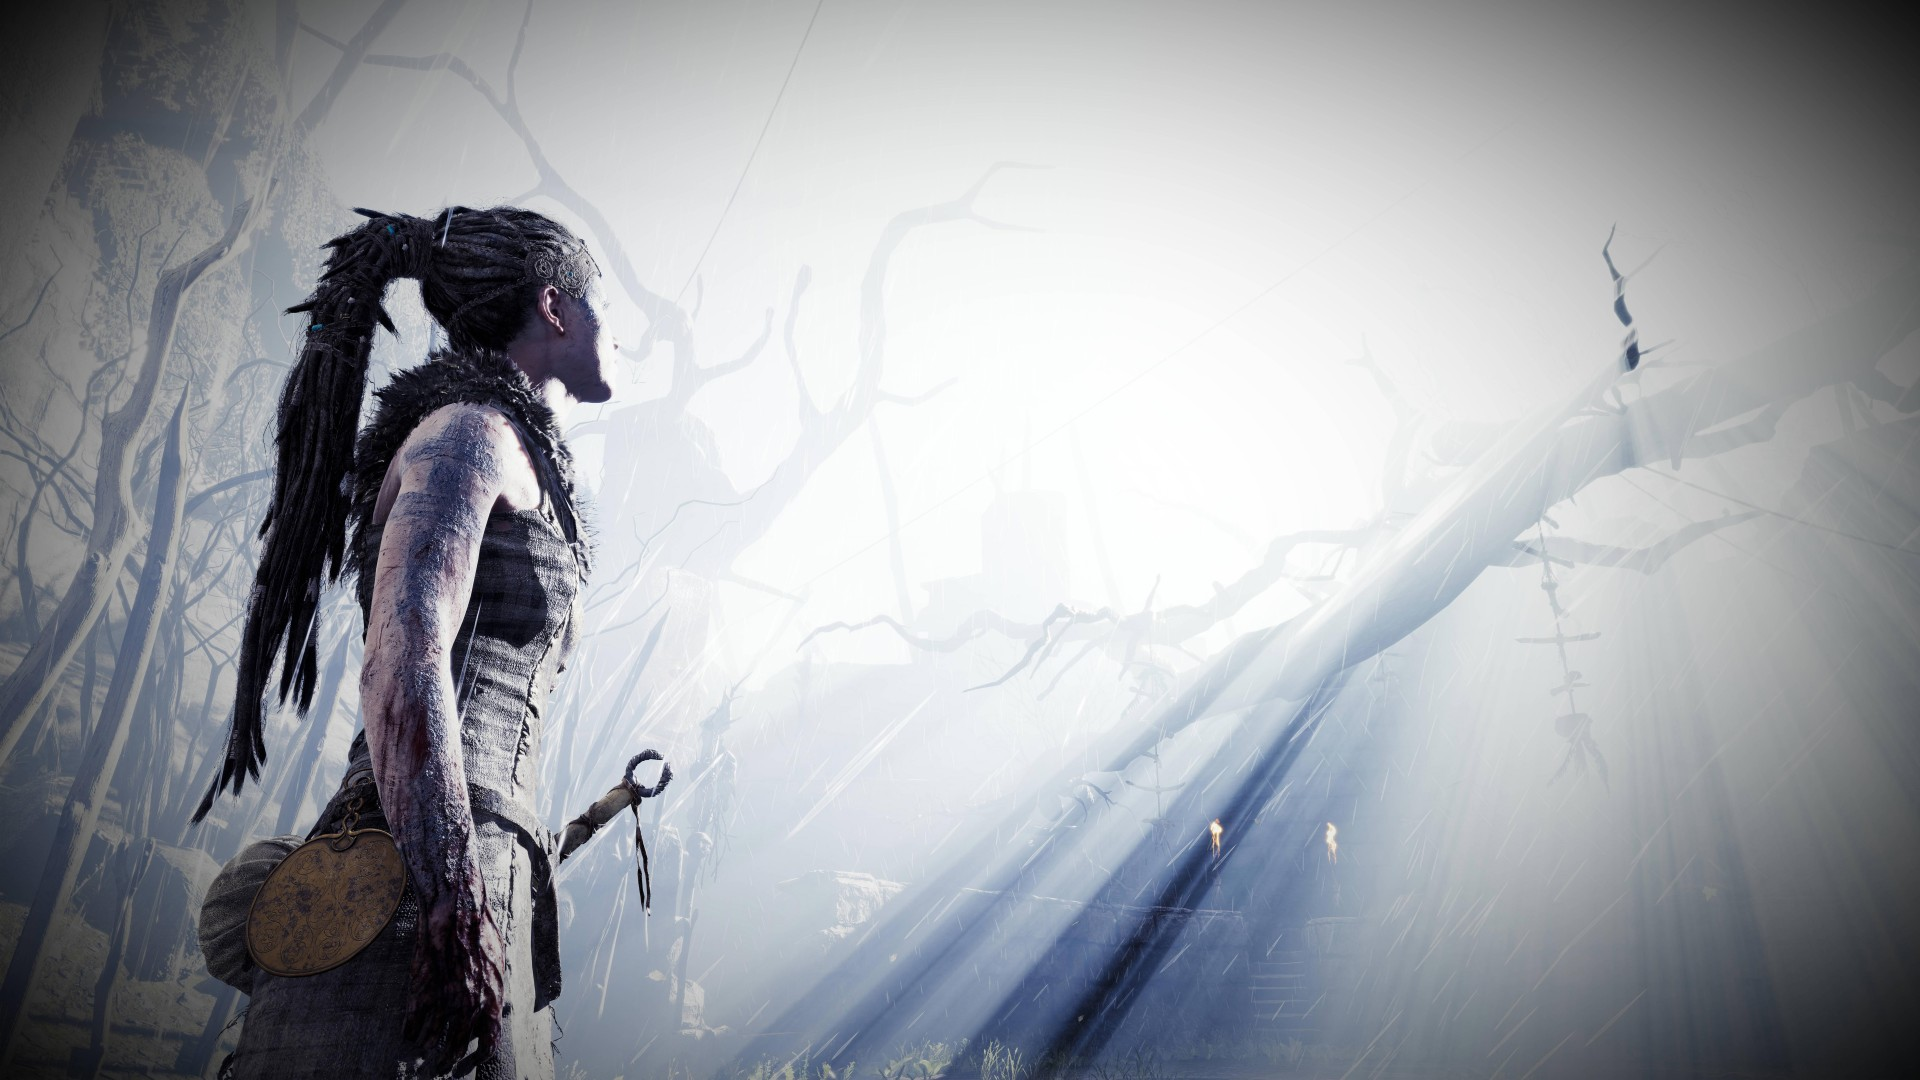 Creative 3d Wallpapers For Desktop Hellblade Senuas Sacrifice 4k 8k Wallpapers Hd